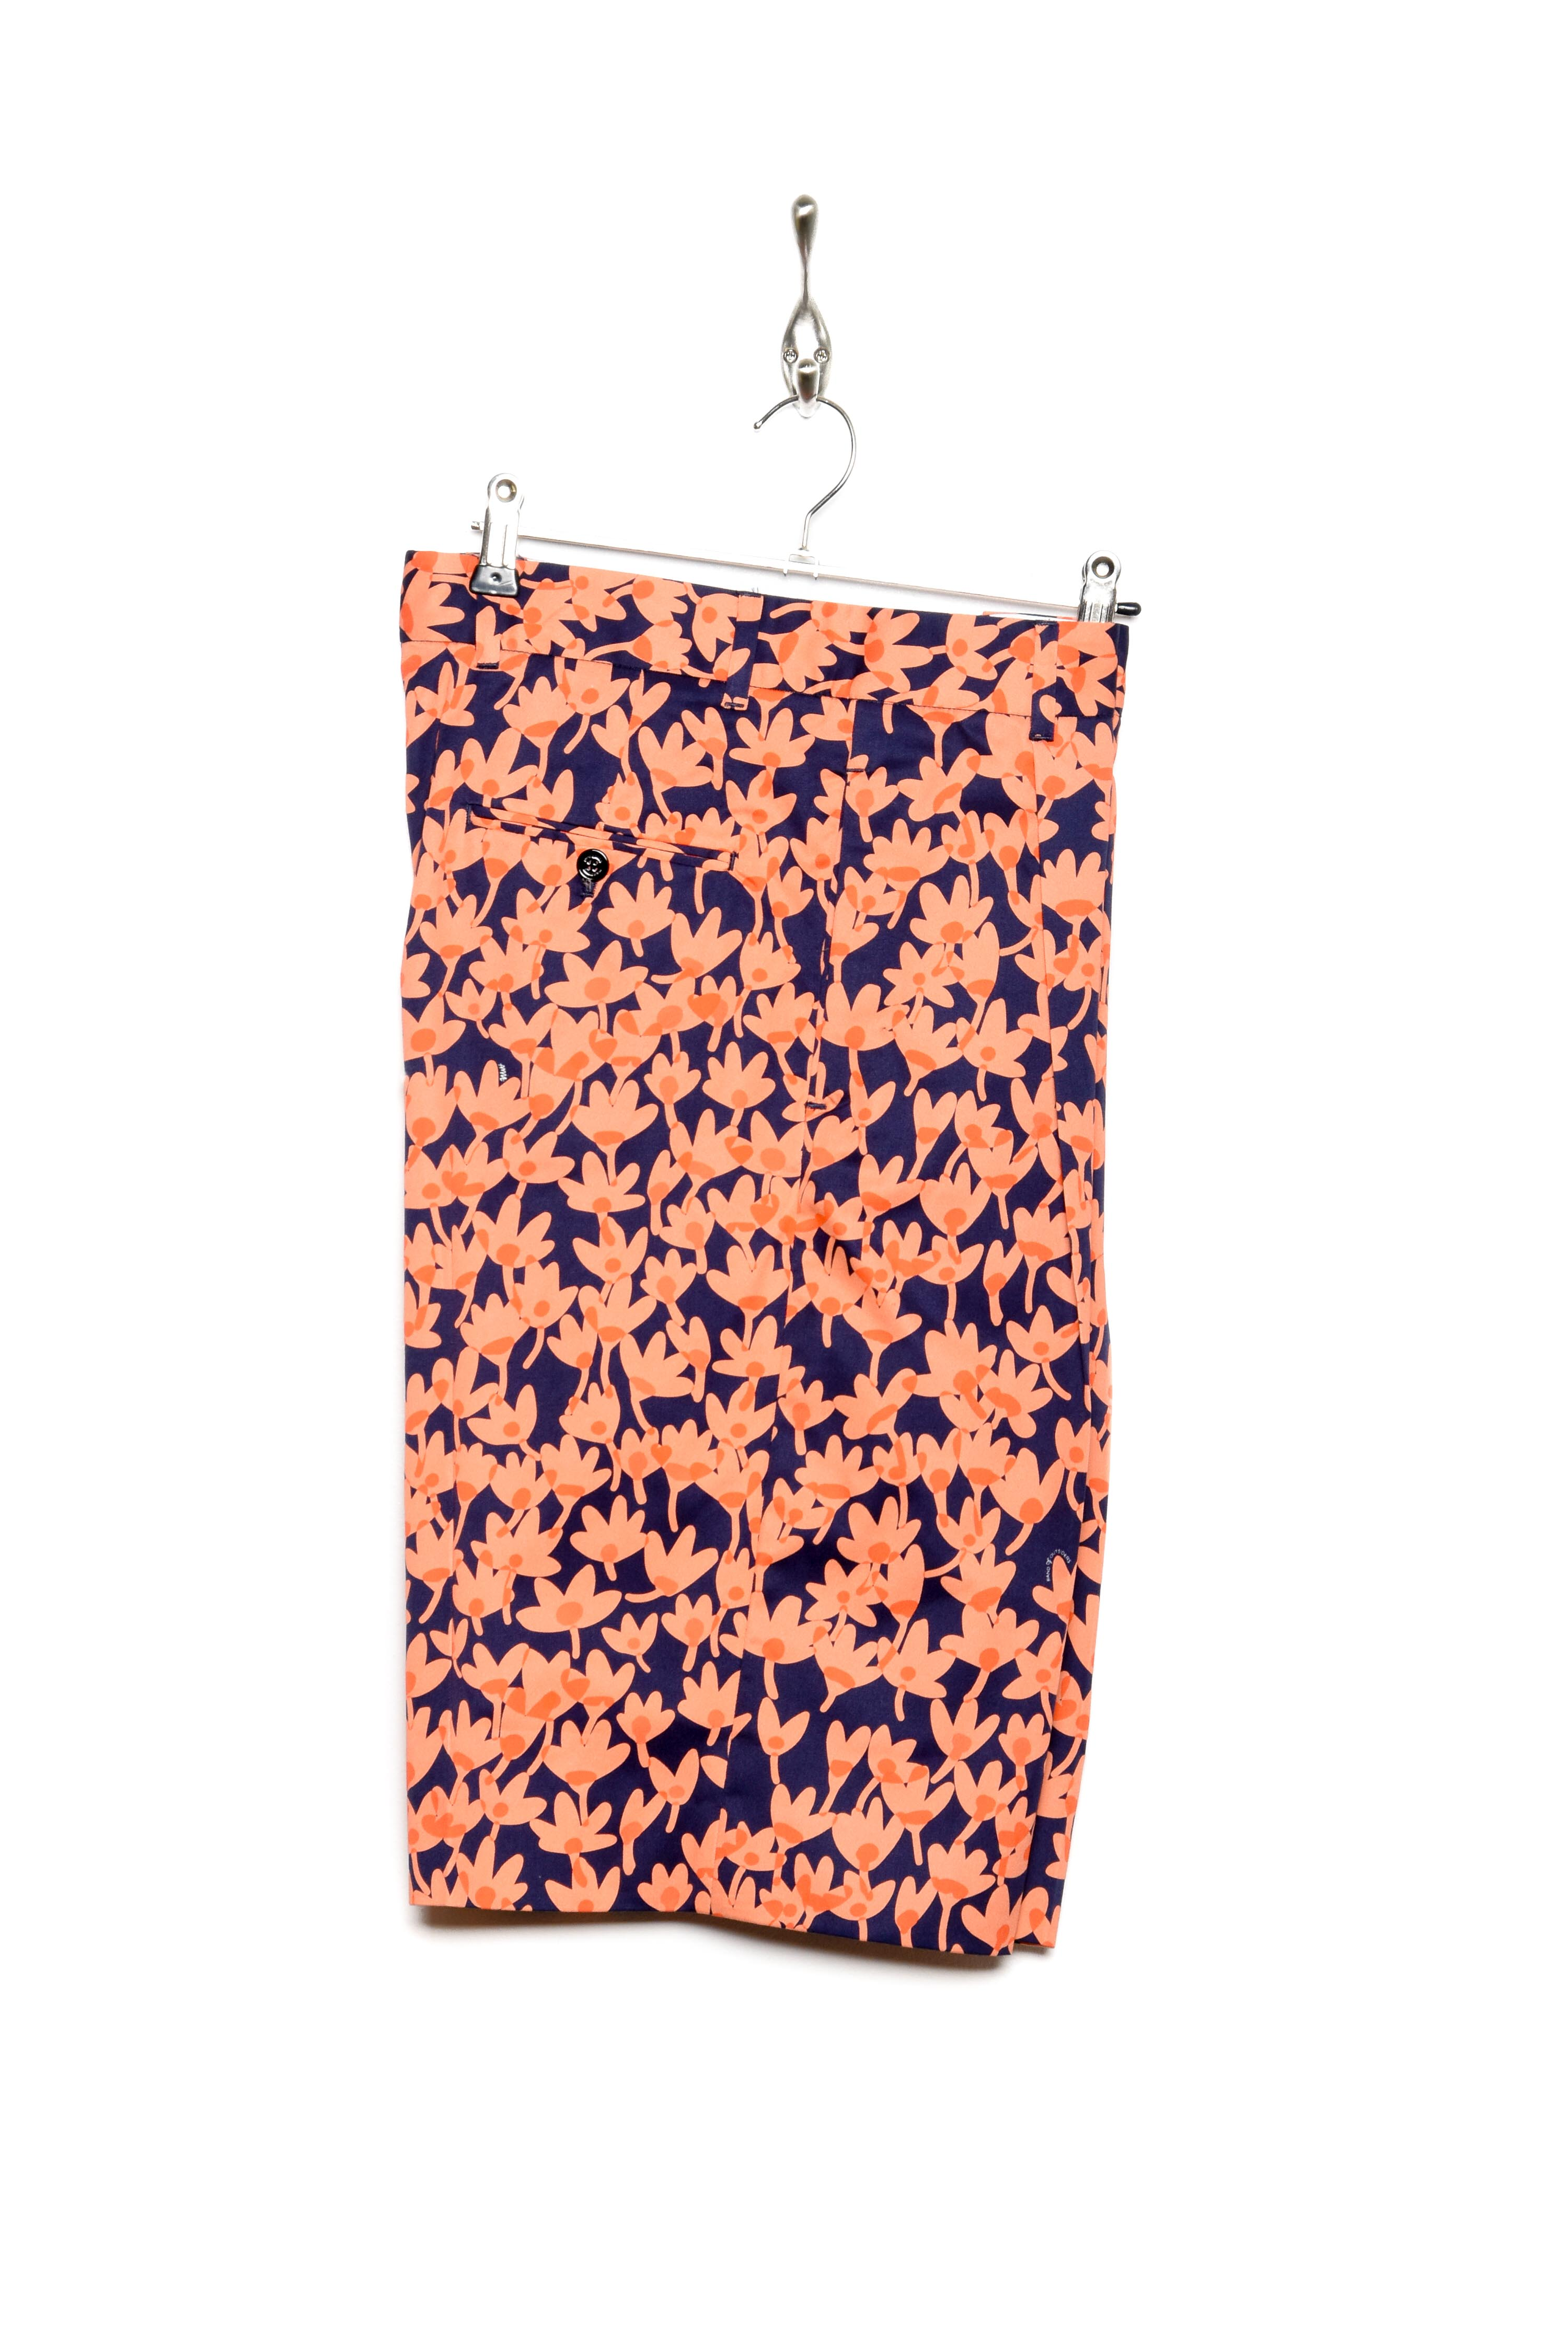 Band Of Outsiders Riso Flower Shorts coral/navy